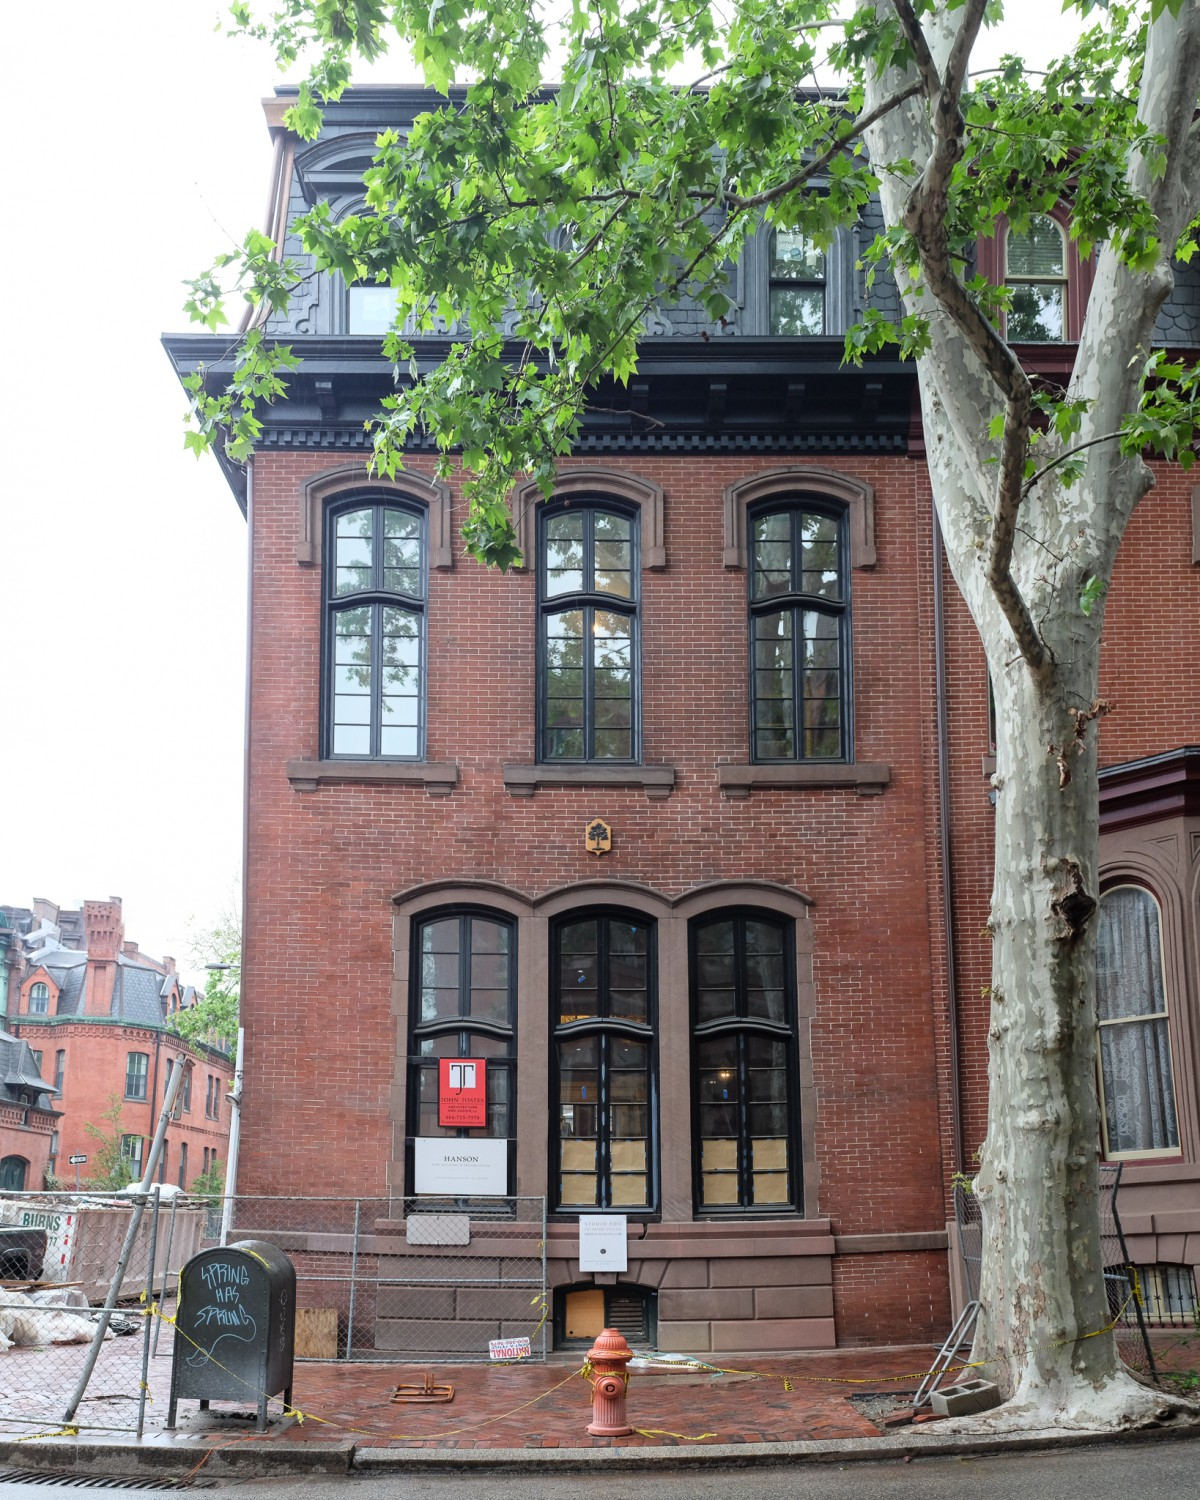 Delancey Place whole house renovation and historic preservation to nineteenth-century row house – with John Toates Architecture & Design and S.R. Gambrel Inc. Expected completion Fall 2018.